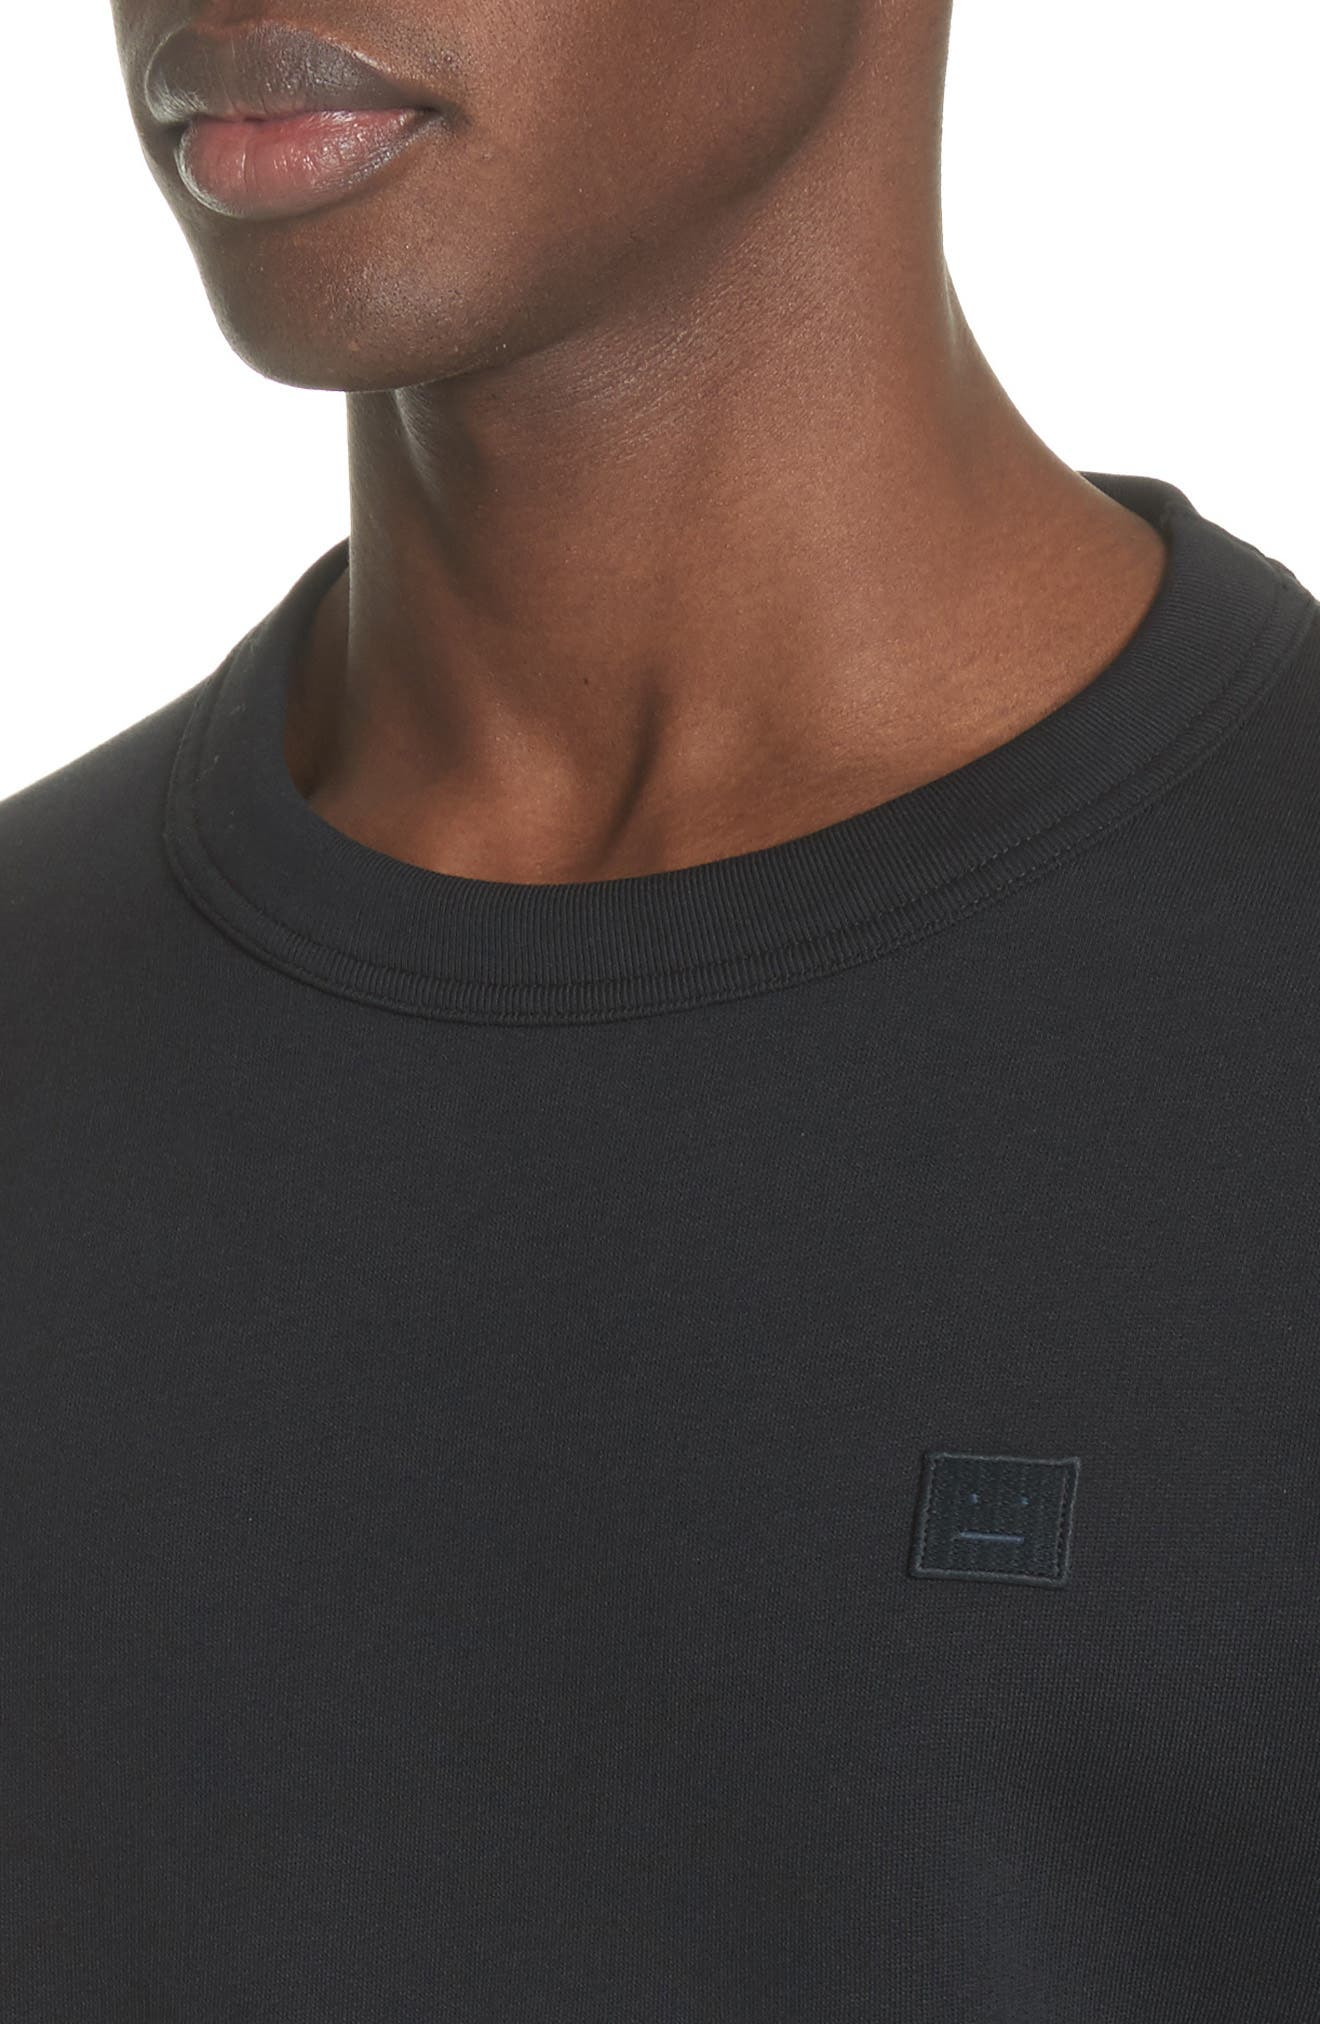 ACNE STUDIOS, Fairview Face Crewneck Sweatshirt, Alternate thumbnail 4, color, BLACK